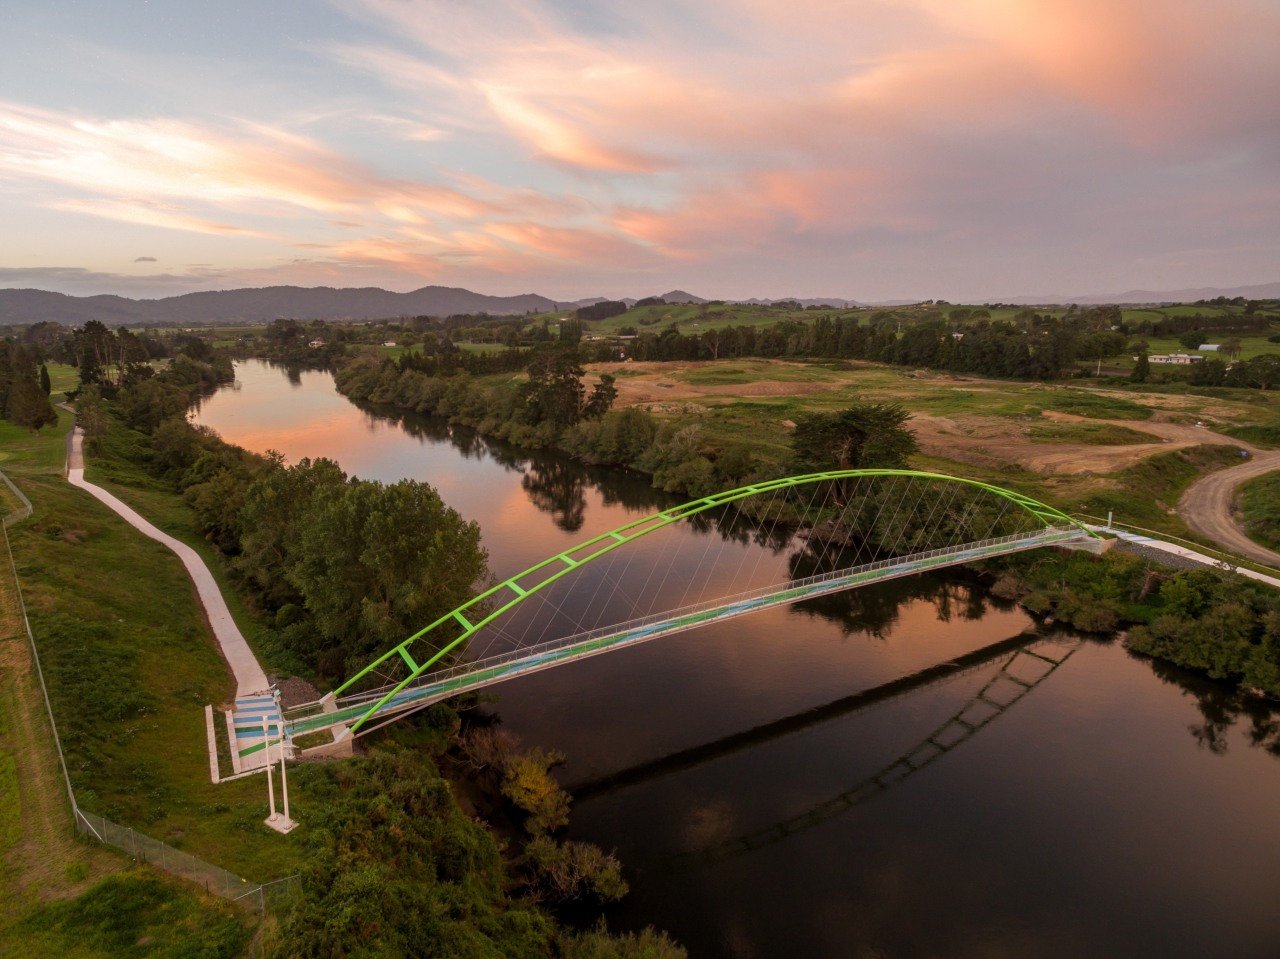 Perry Bridge aerial photography, bank, bird's eye view, bridge, cloud, dawn, evening, fixed link, floodplain, fluvial landforms of streams, horizon, landscape, morning, photography, reflection, reservoir, river, rural area, sky, sunlight, water, water resources, waterway, wetland, brown, gray